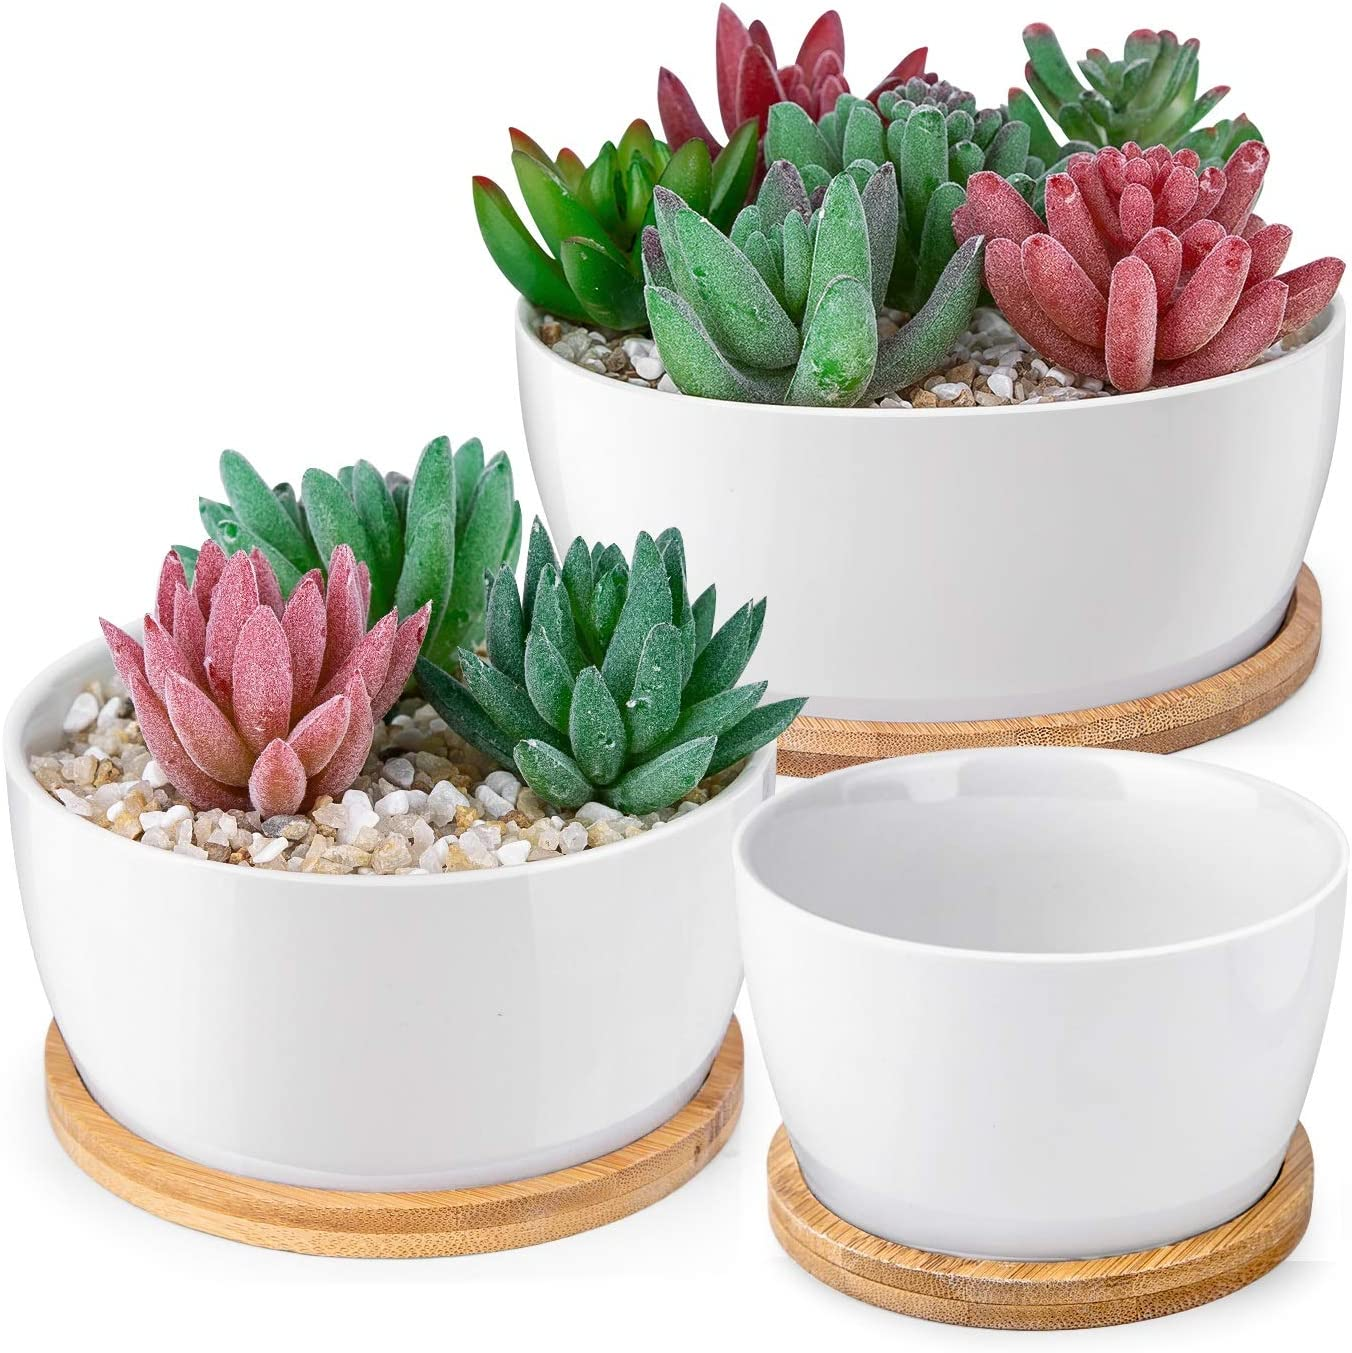 HOMENOTE 6 5 3.8 inch White Succulents Pots with Drainage Bamboo Trays Round Ceramic Succulent planters Indoor, Set of 3